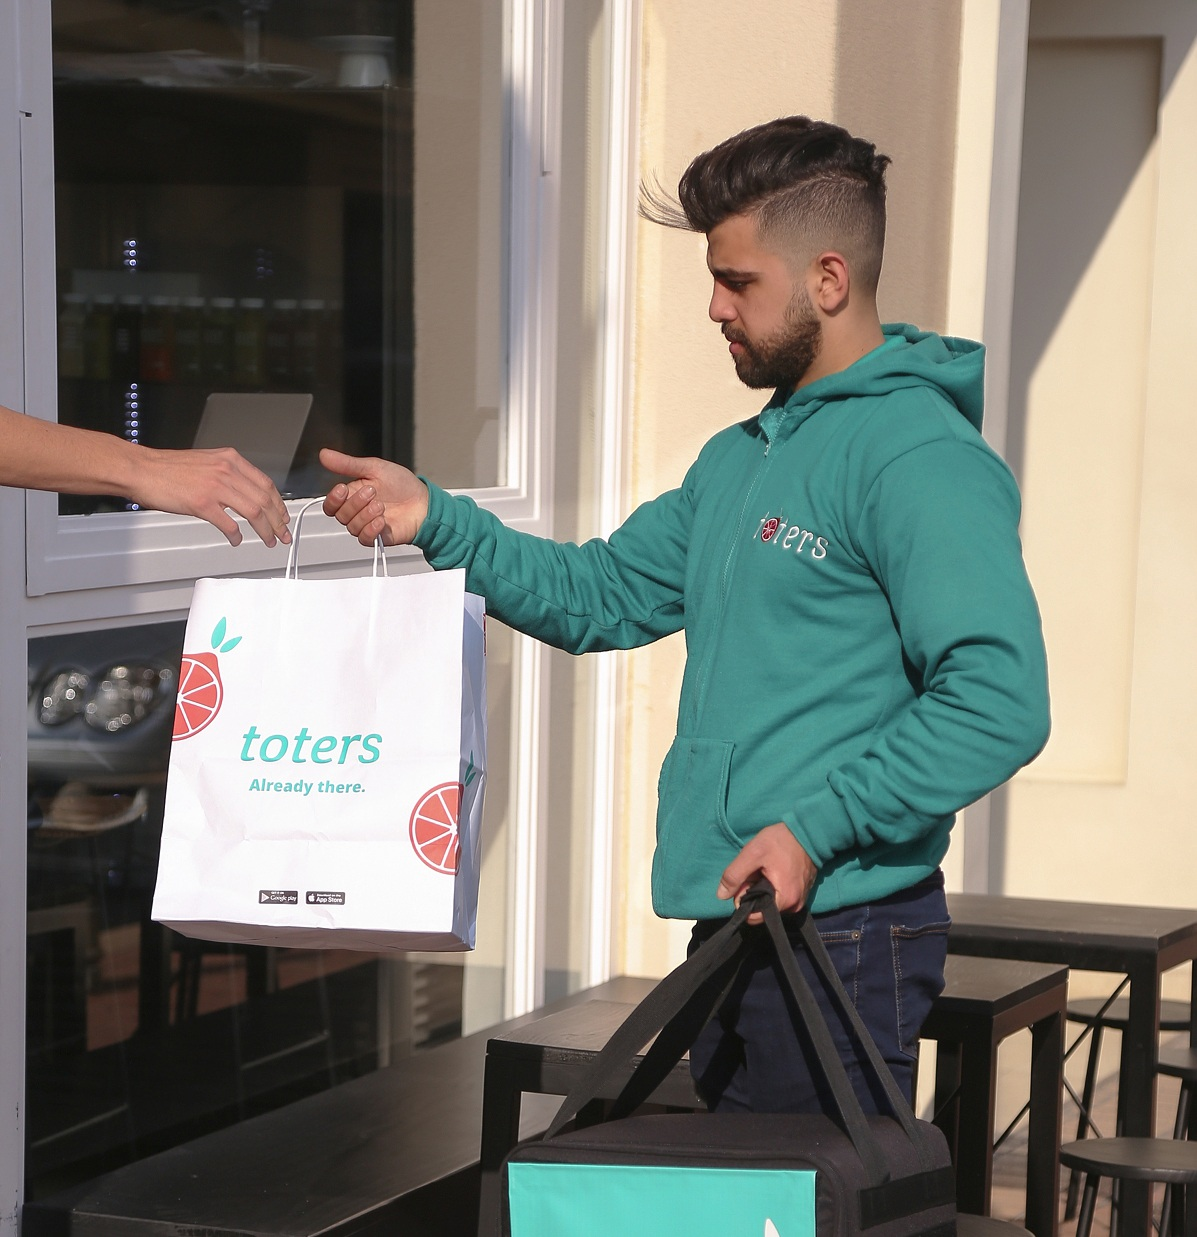 """Delivering with Toters has given me access to big opportunities and an amazing support system. - Ahmad H."